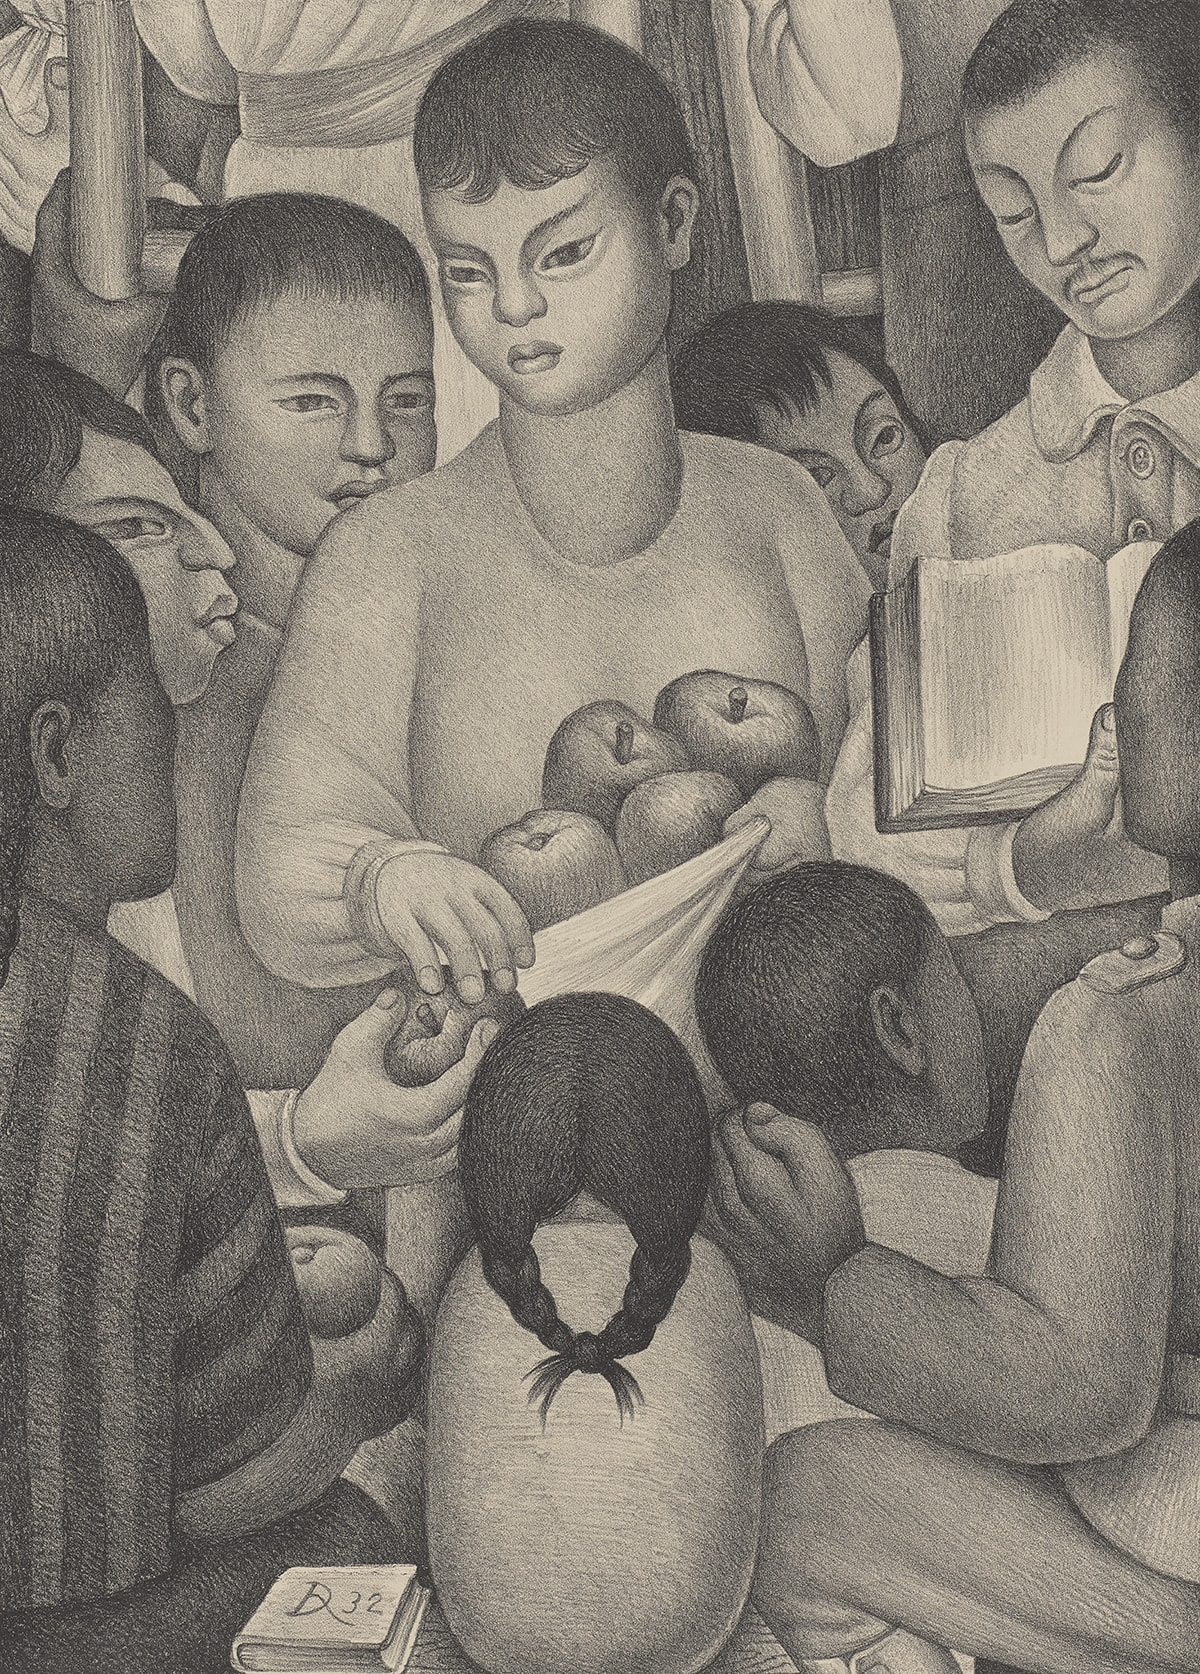 Diego Rivera, Los Frutos del Trabajo (The Fruits of Labor), 1932, lithograph on cream wove paper, 16 7/16 in x 11 13/16 inches. Vertical rectangular print rendered in soft gradations of grays of 8 figures seated in a circle turned to a figure in the upper right corner and receiving apples from a central figure. The scene is intimate, tightly cropped, and facial expressions are serene. The central figure is youthful with short hair, head at three-quarter view looking to their right, hand outstretched having given an apple to a seated figure in profile at left. The left hand holds a cloth taut holding a bounty of apples. Three young figures seated behind peek out, obscured by the taller figures. An older mustachioed figure with collared shirt in top right has eyes cast down at a book spread open by his thumb. Four figures in the foreground with backs turned to the viewer face the apple giver and reader. The diminutive small figure at bottom center has long dark hair center-parted and braided, the ends of the braids are joined in a knot. At bottom right, an older figure wearing a jacket with epaulettes has left hand rested on another youth's shoulder. In the foreground, a bound book's cover bears a cursive D and 32.